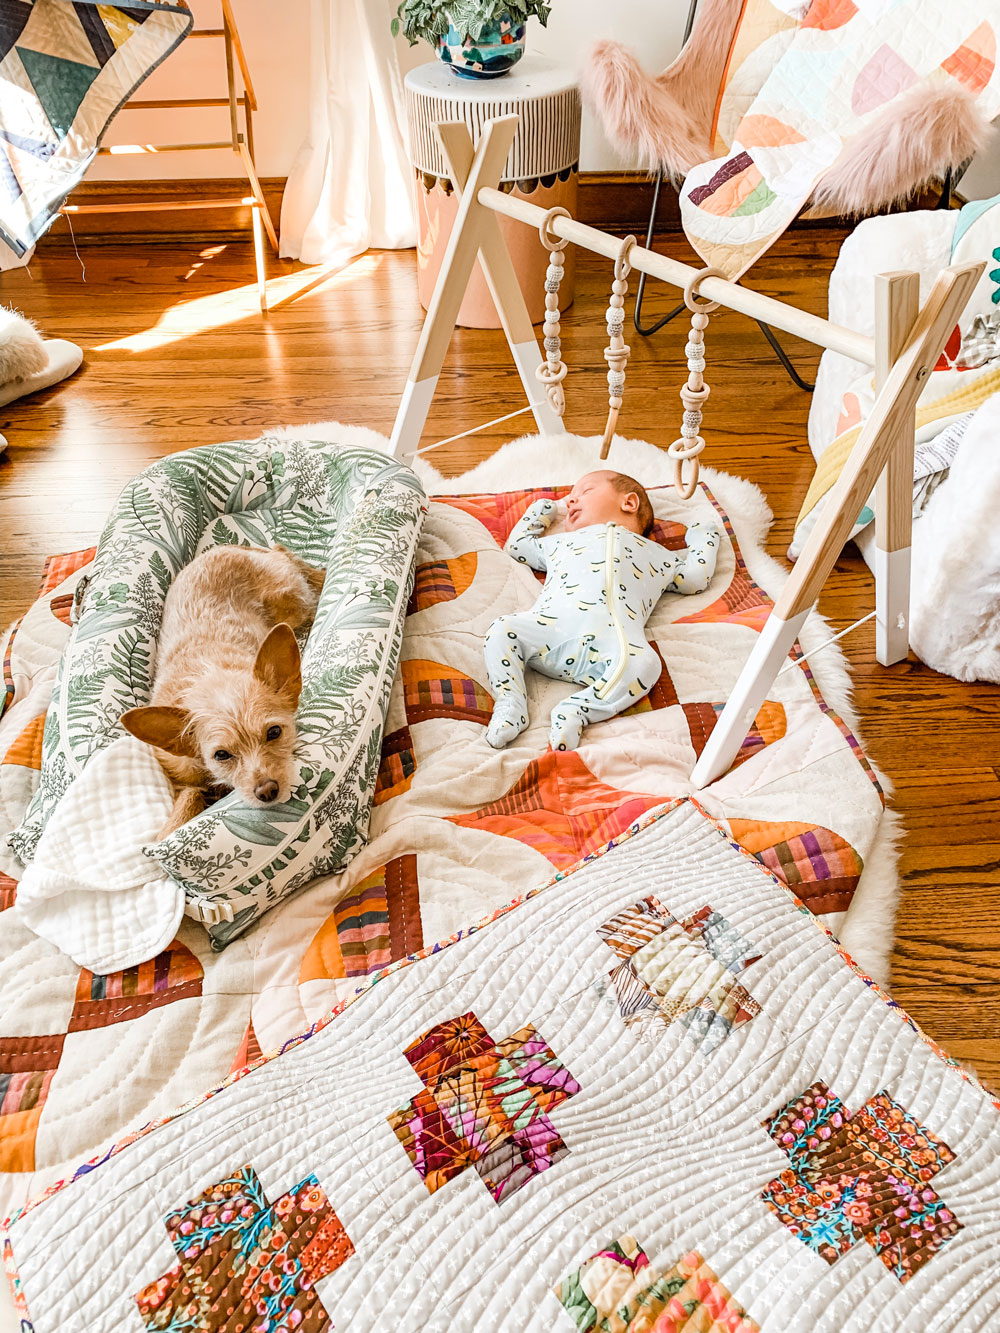 The 10 newborn baby essentials every first time new mom should put on their baby registry